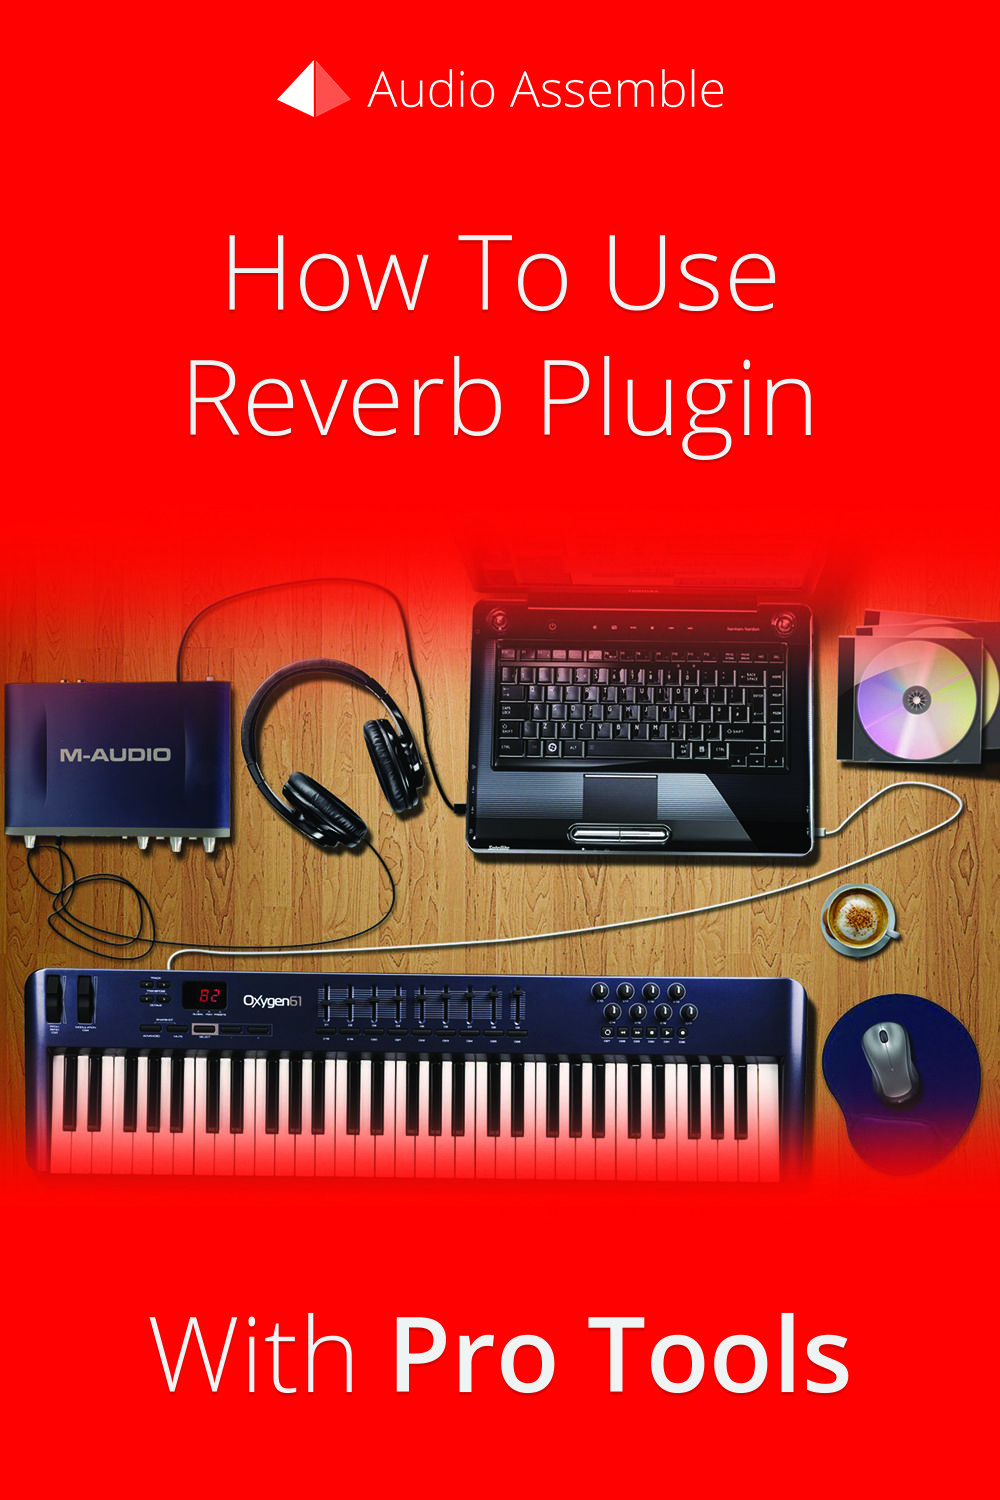 Reverb Pro Tools Video Tools